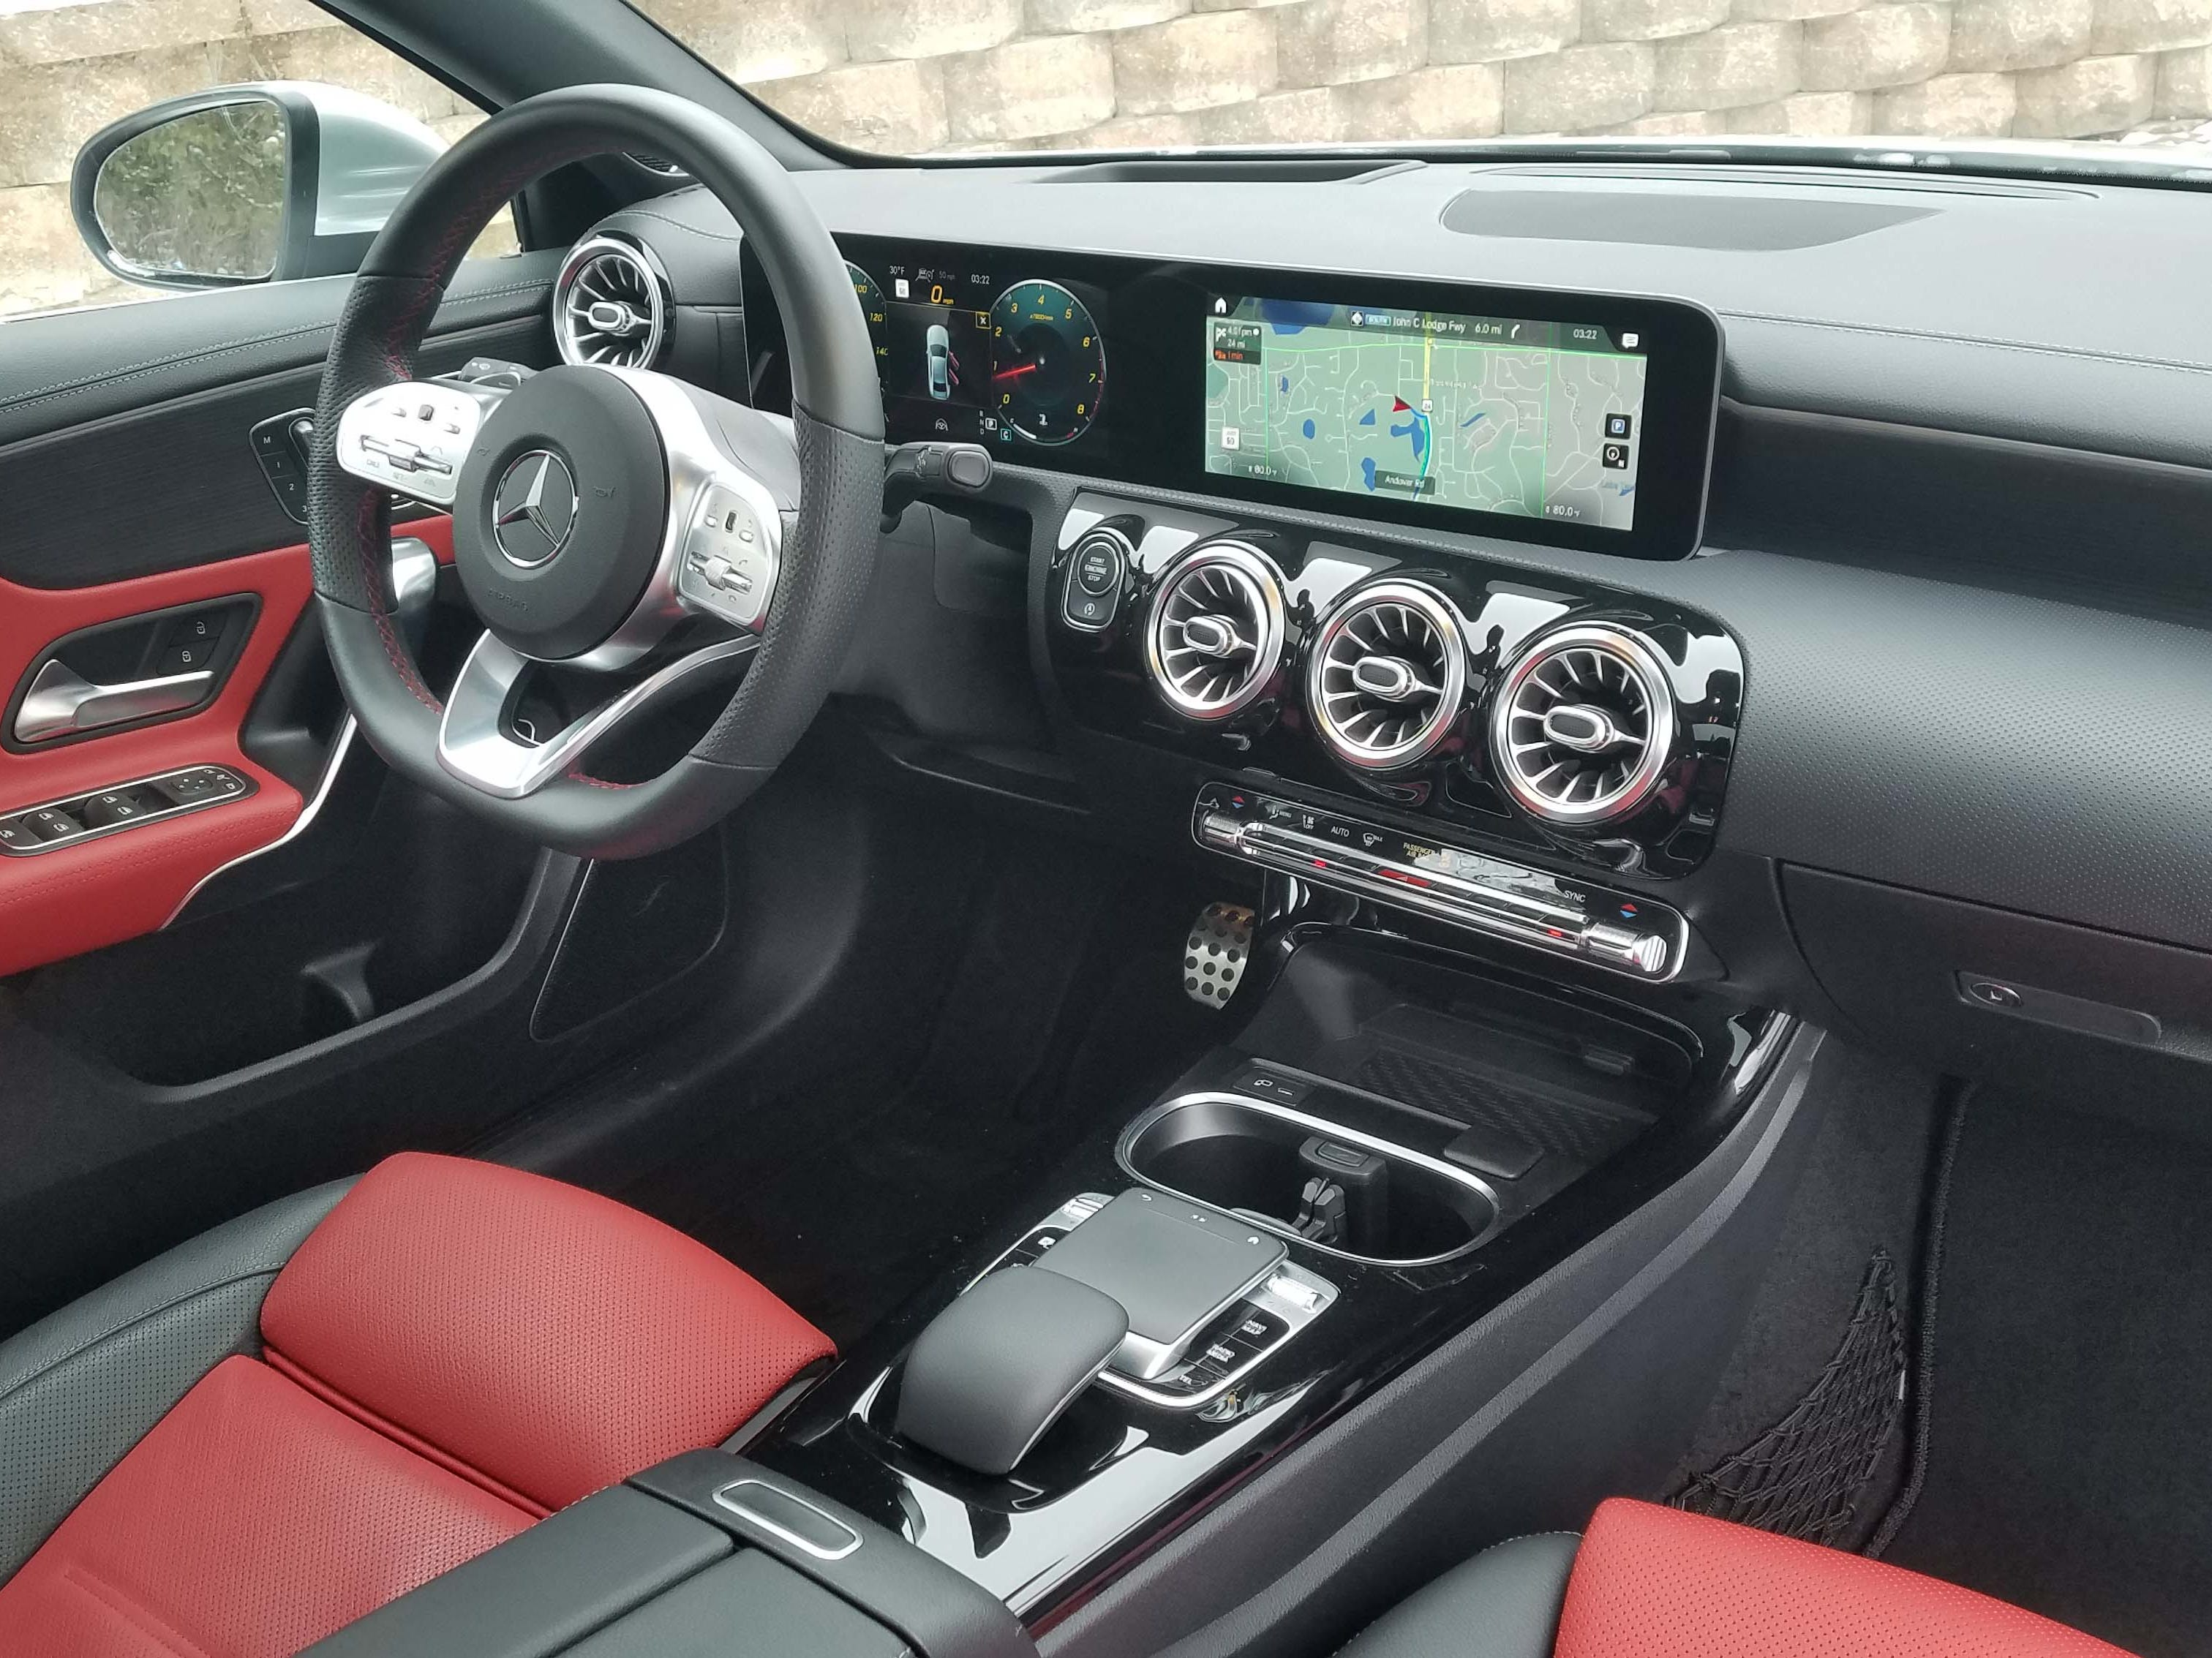 The Mercedes A220 interior is a big step up from the CLA's cheap, ill-fitting attempt of five years ago. The A-class is a baby S-class in style and detail.